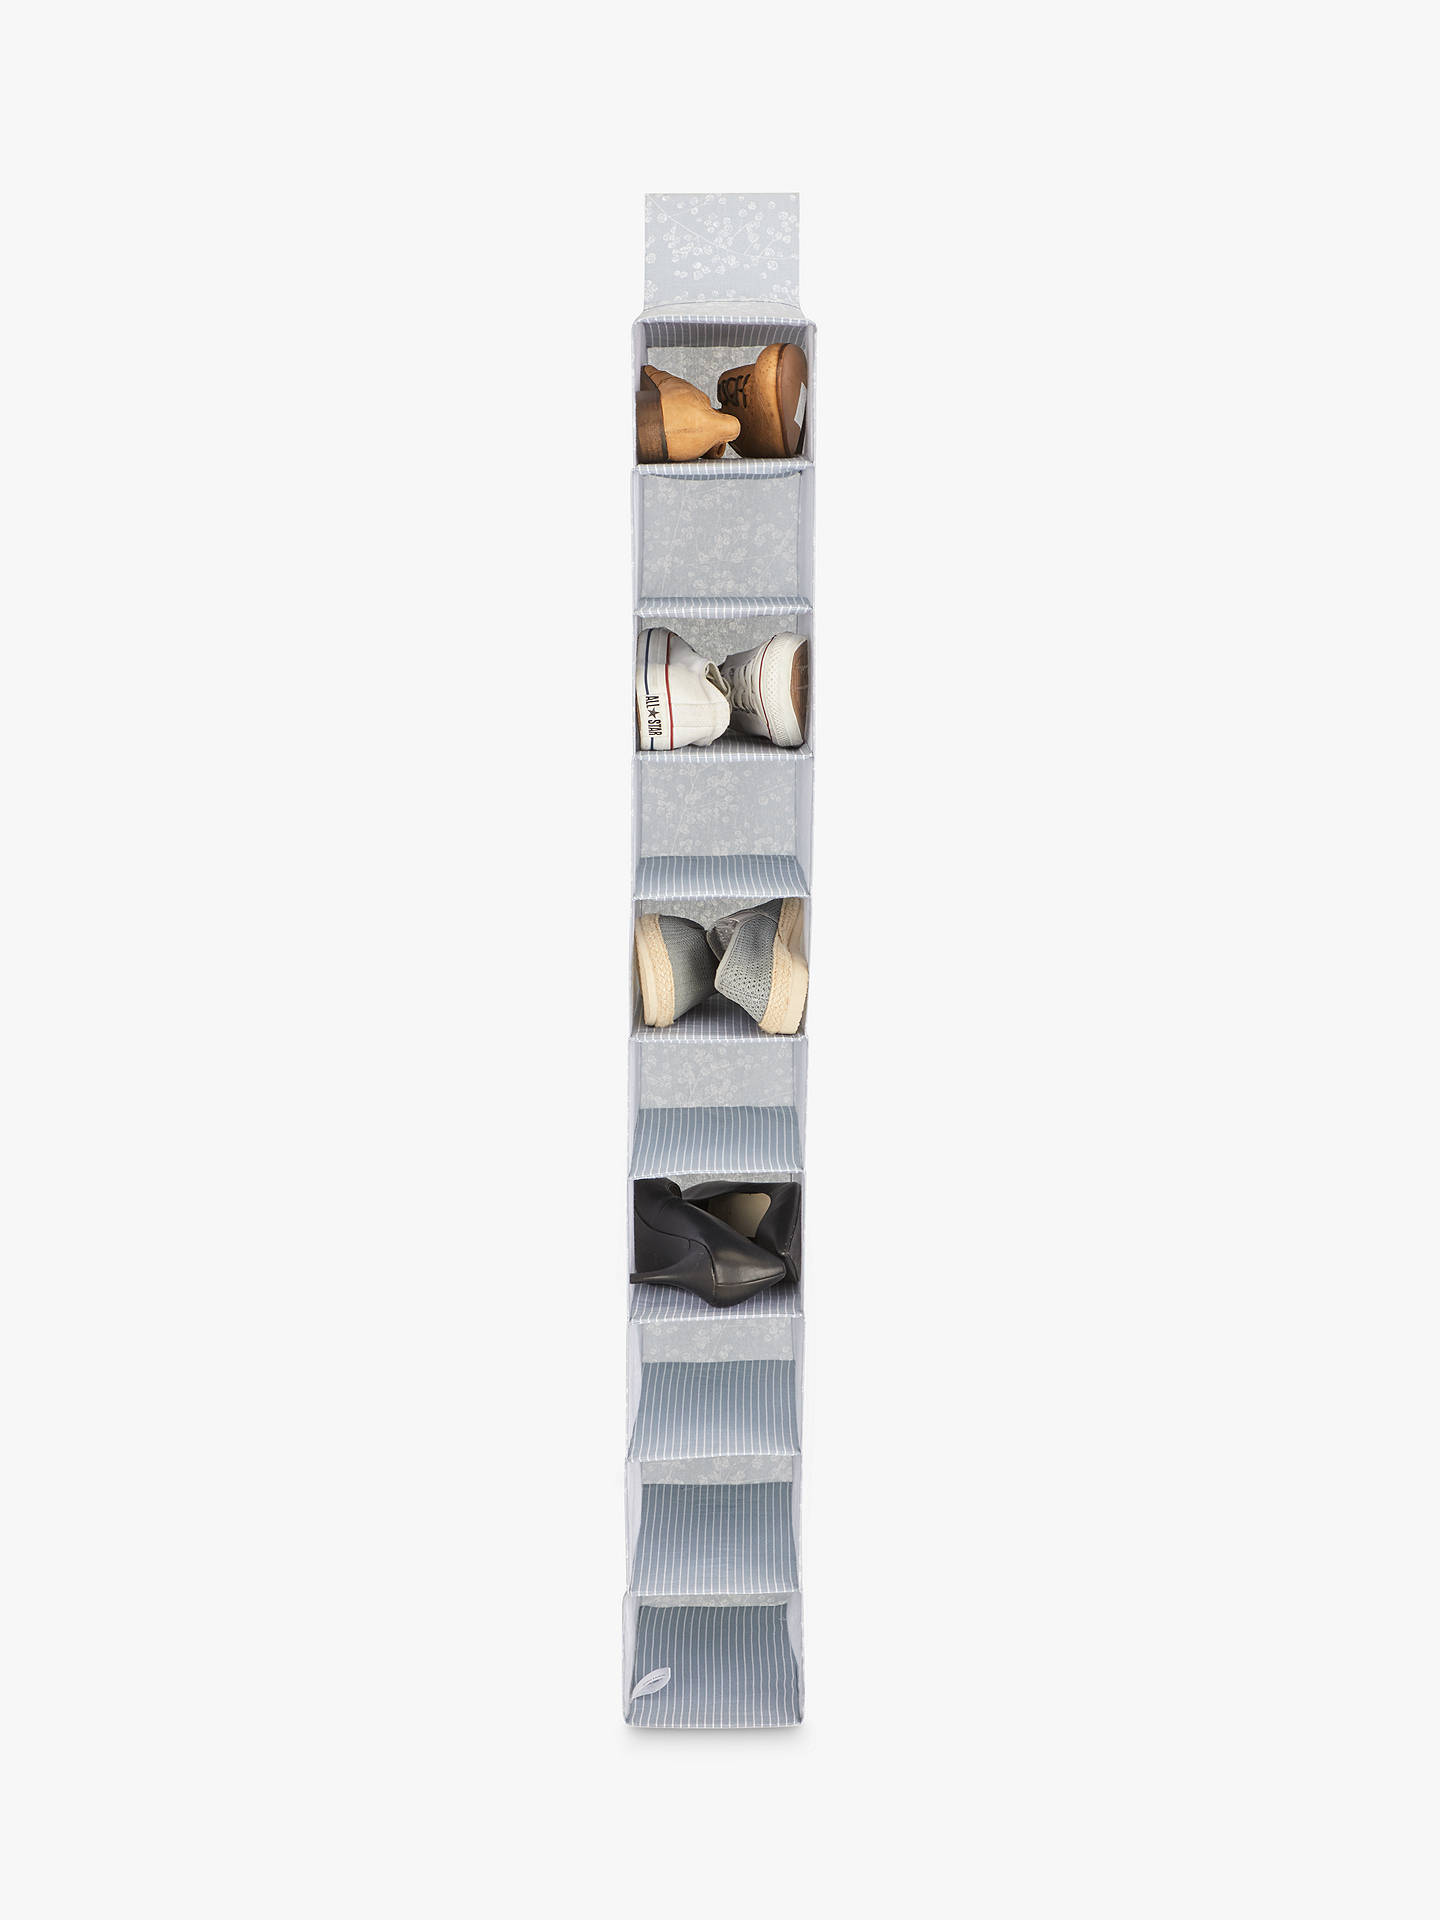 BuyJohn Lewis & Partners Floral Shoe Organiser, Light Grey Online at johnlewis.com